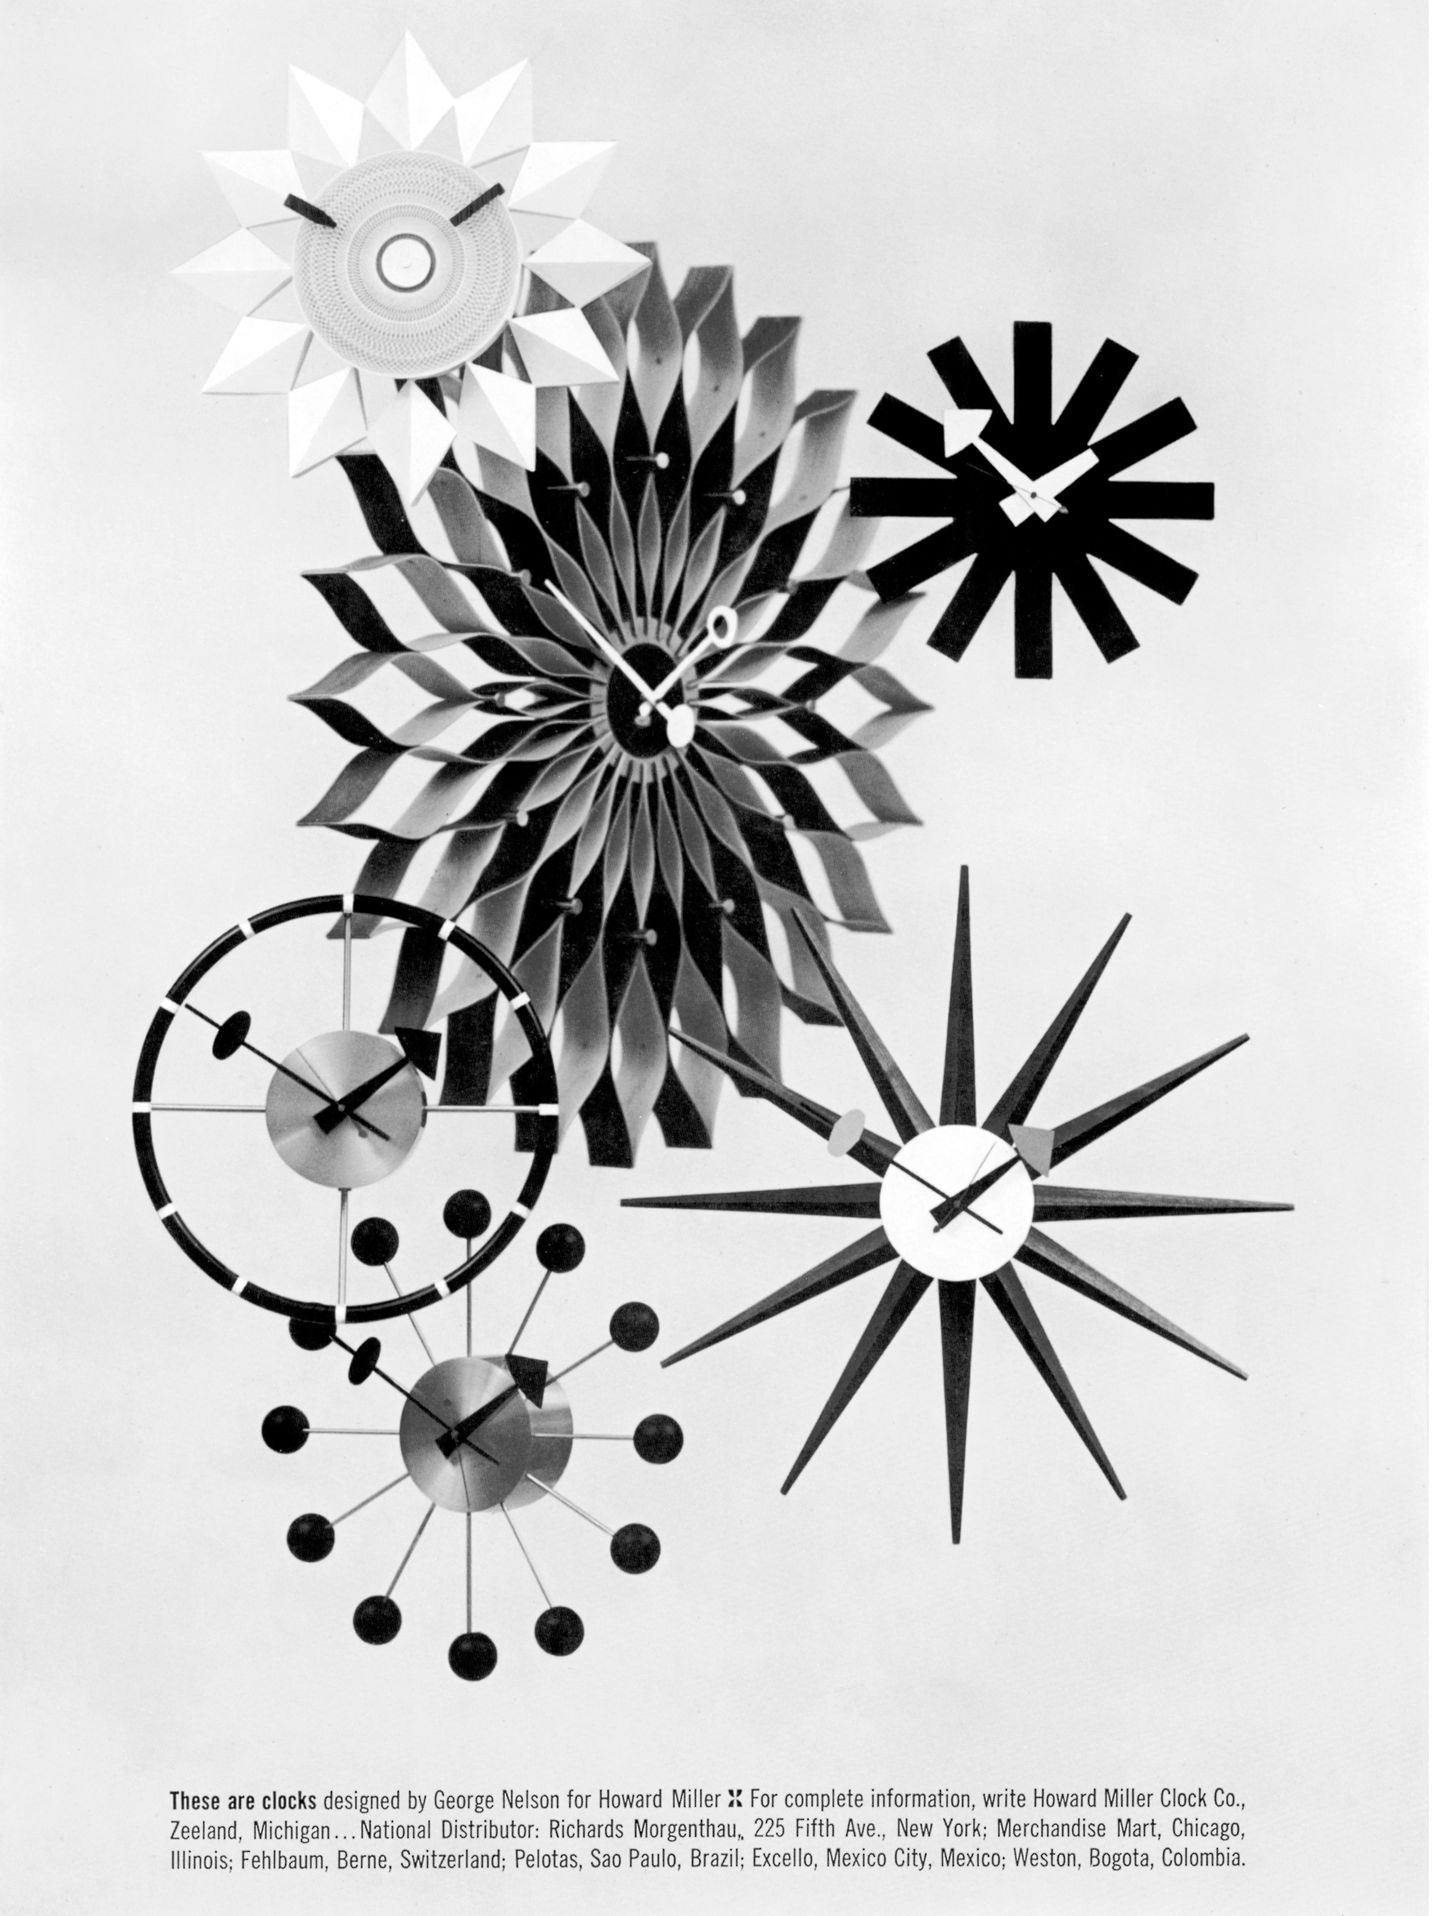 8b9b6af537fc The Wall Clocks are available in a diverse range of shapes and materials.  Equipped with high-quality quartz movements